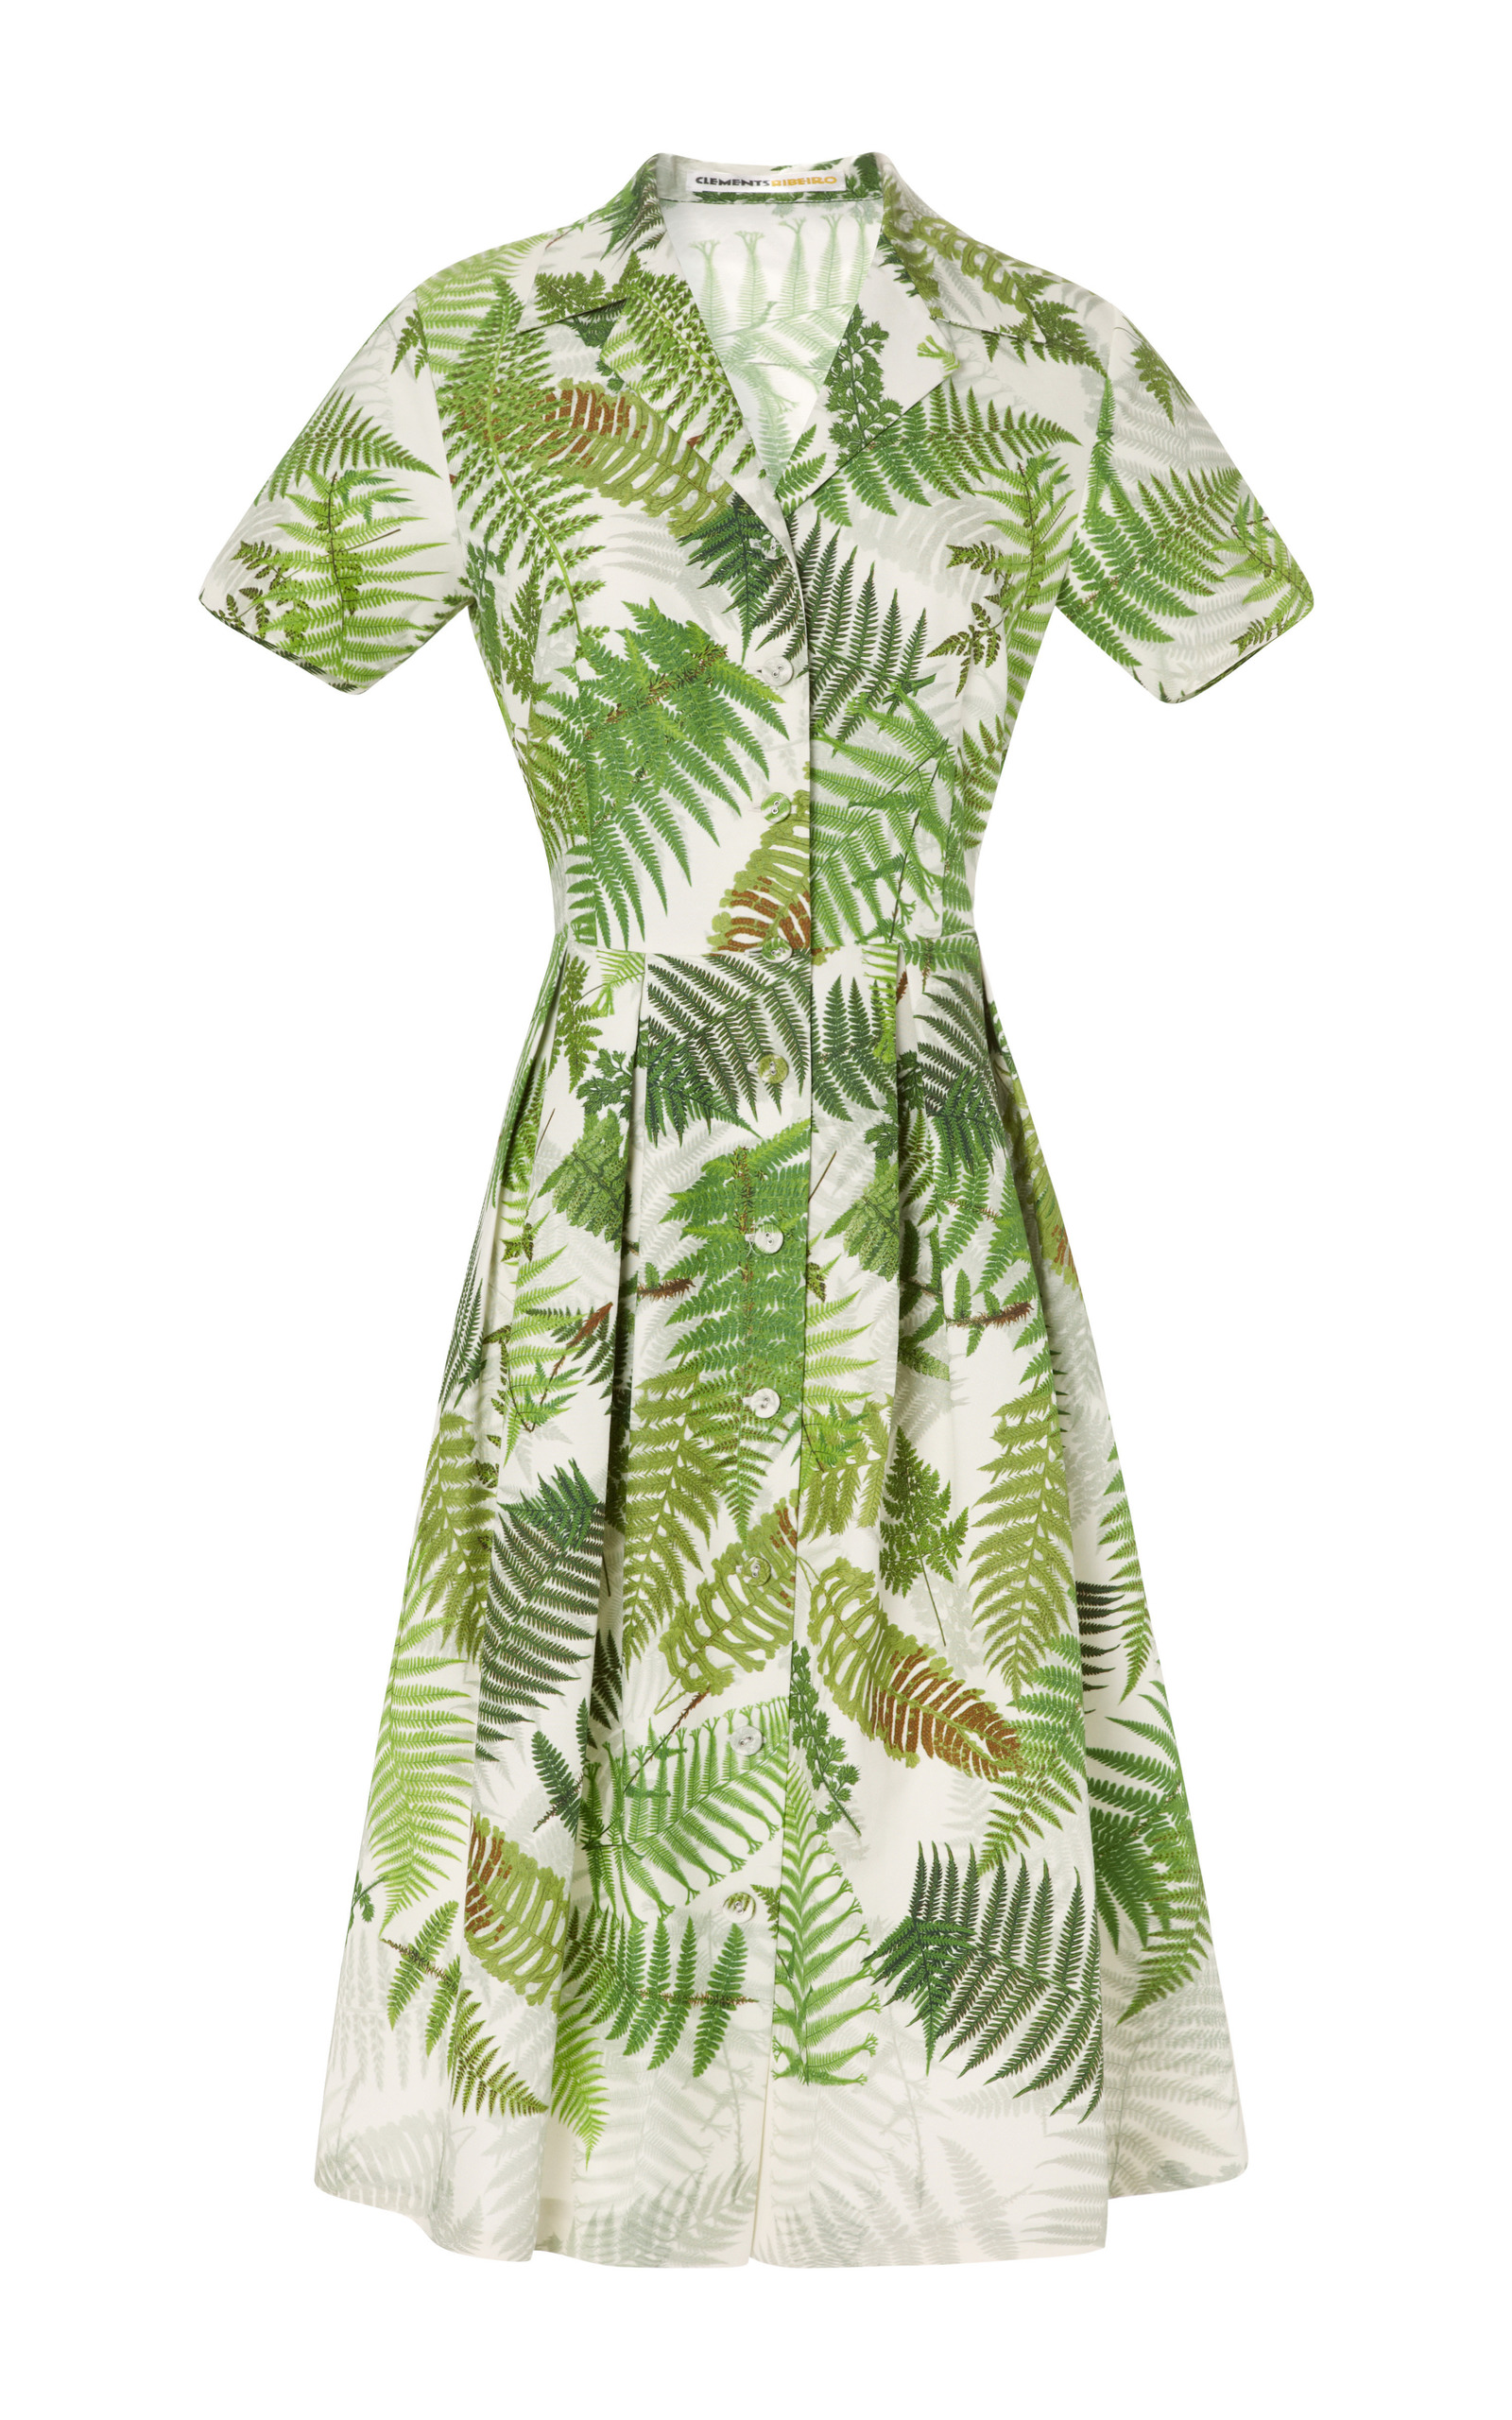 Helena garden party printed guipure lace dress